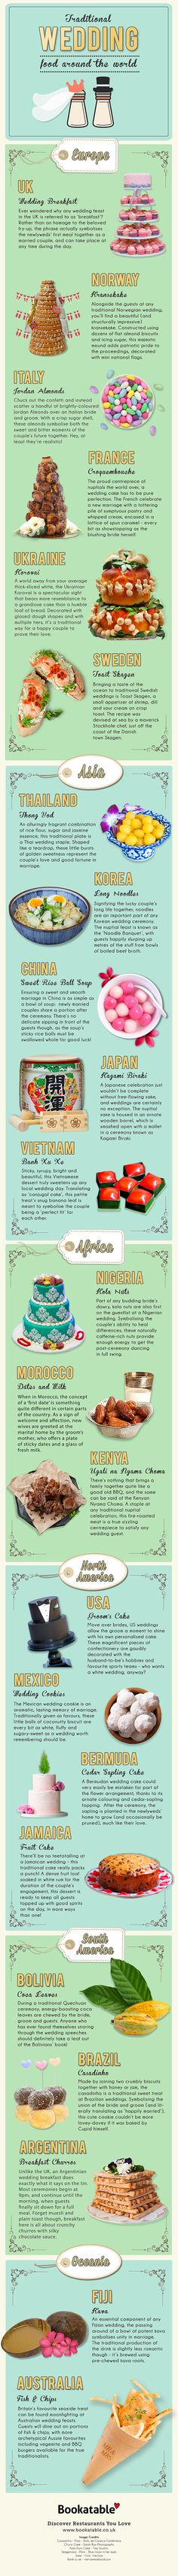 Traditional Wedding Food Enjoyed By Couples From Around The World